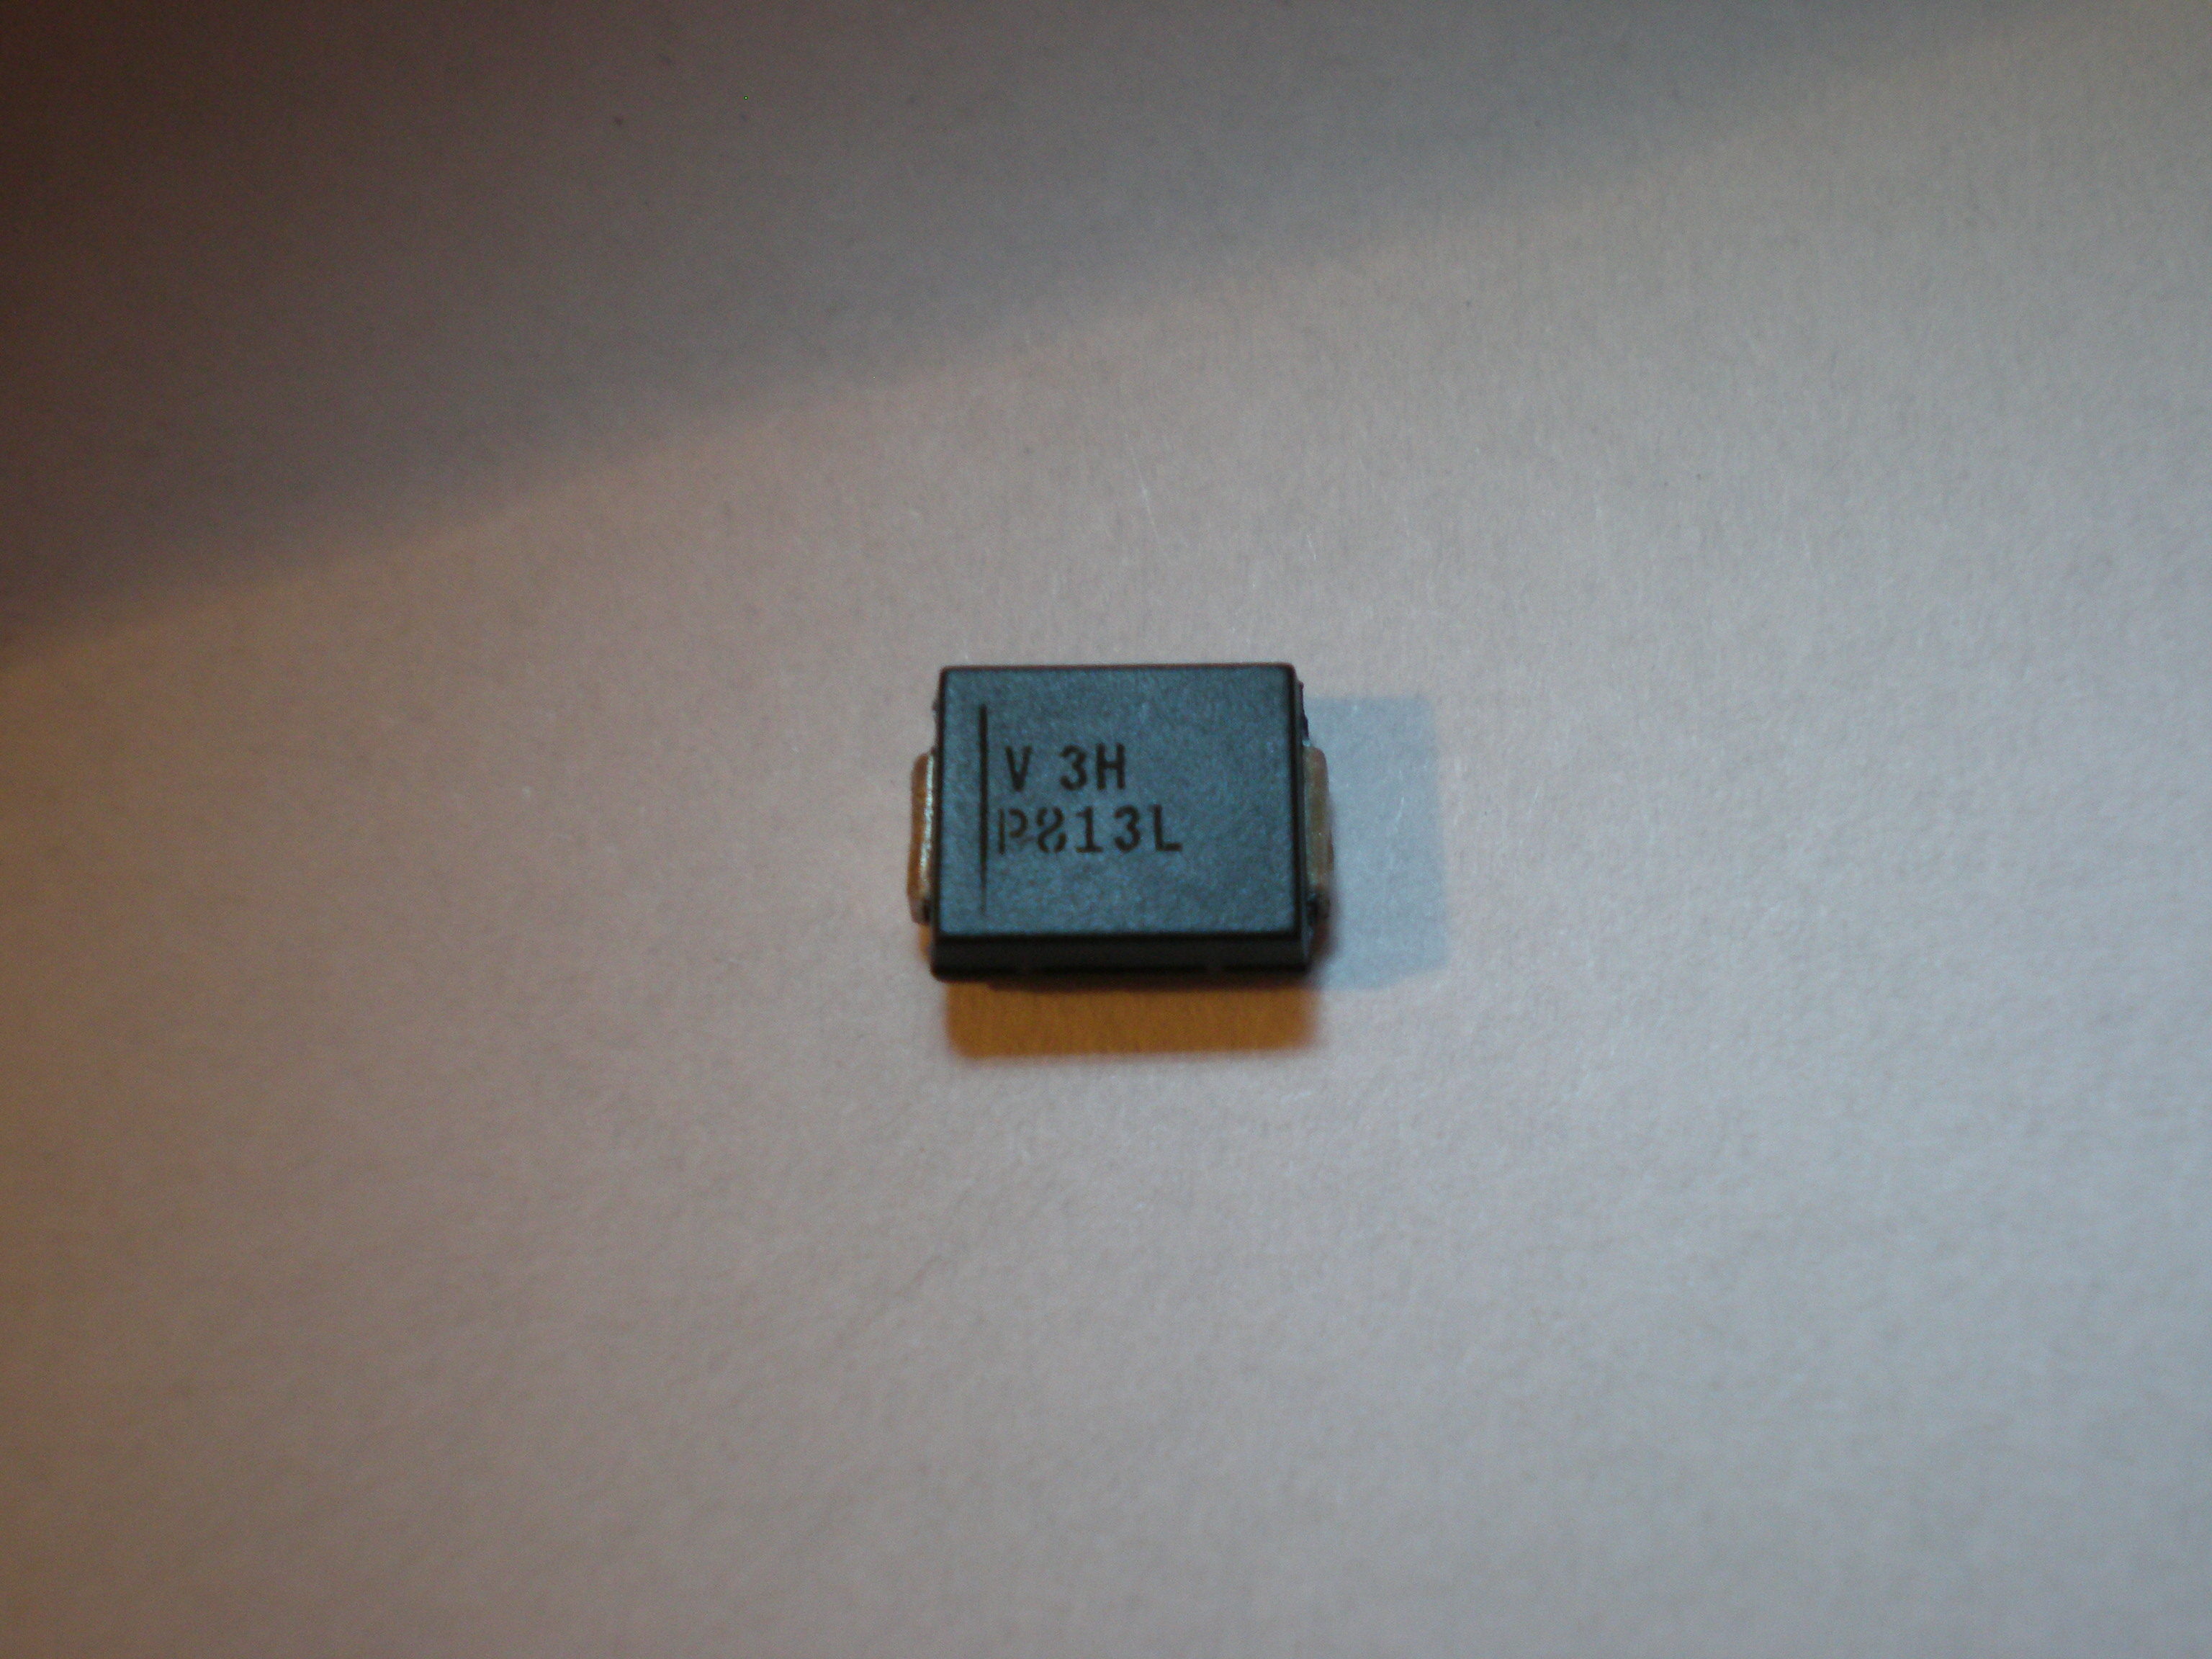 Co to za element - dioda smd V 3H  P813L?